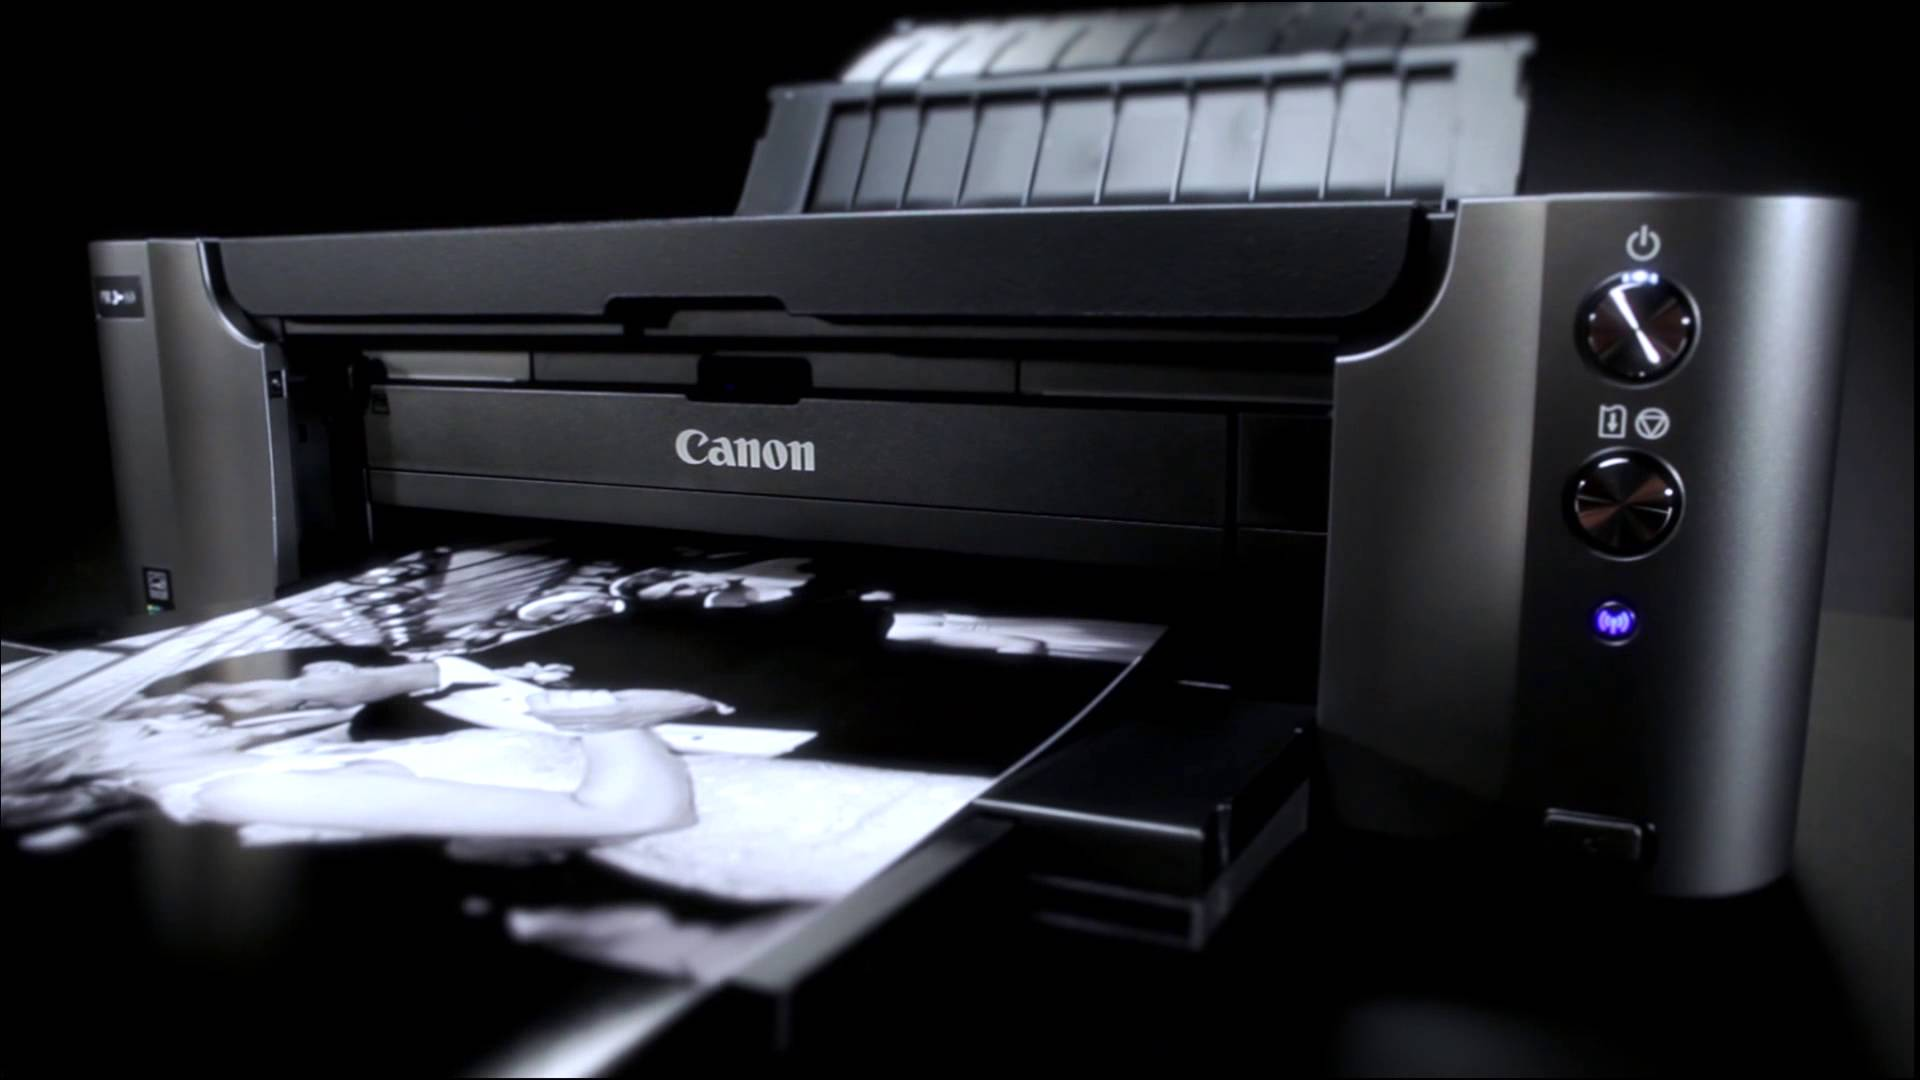 canon printer service center in chennai, canon printer service centers in chennai